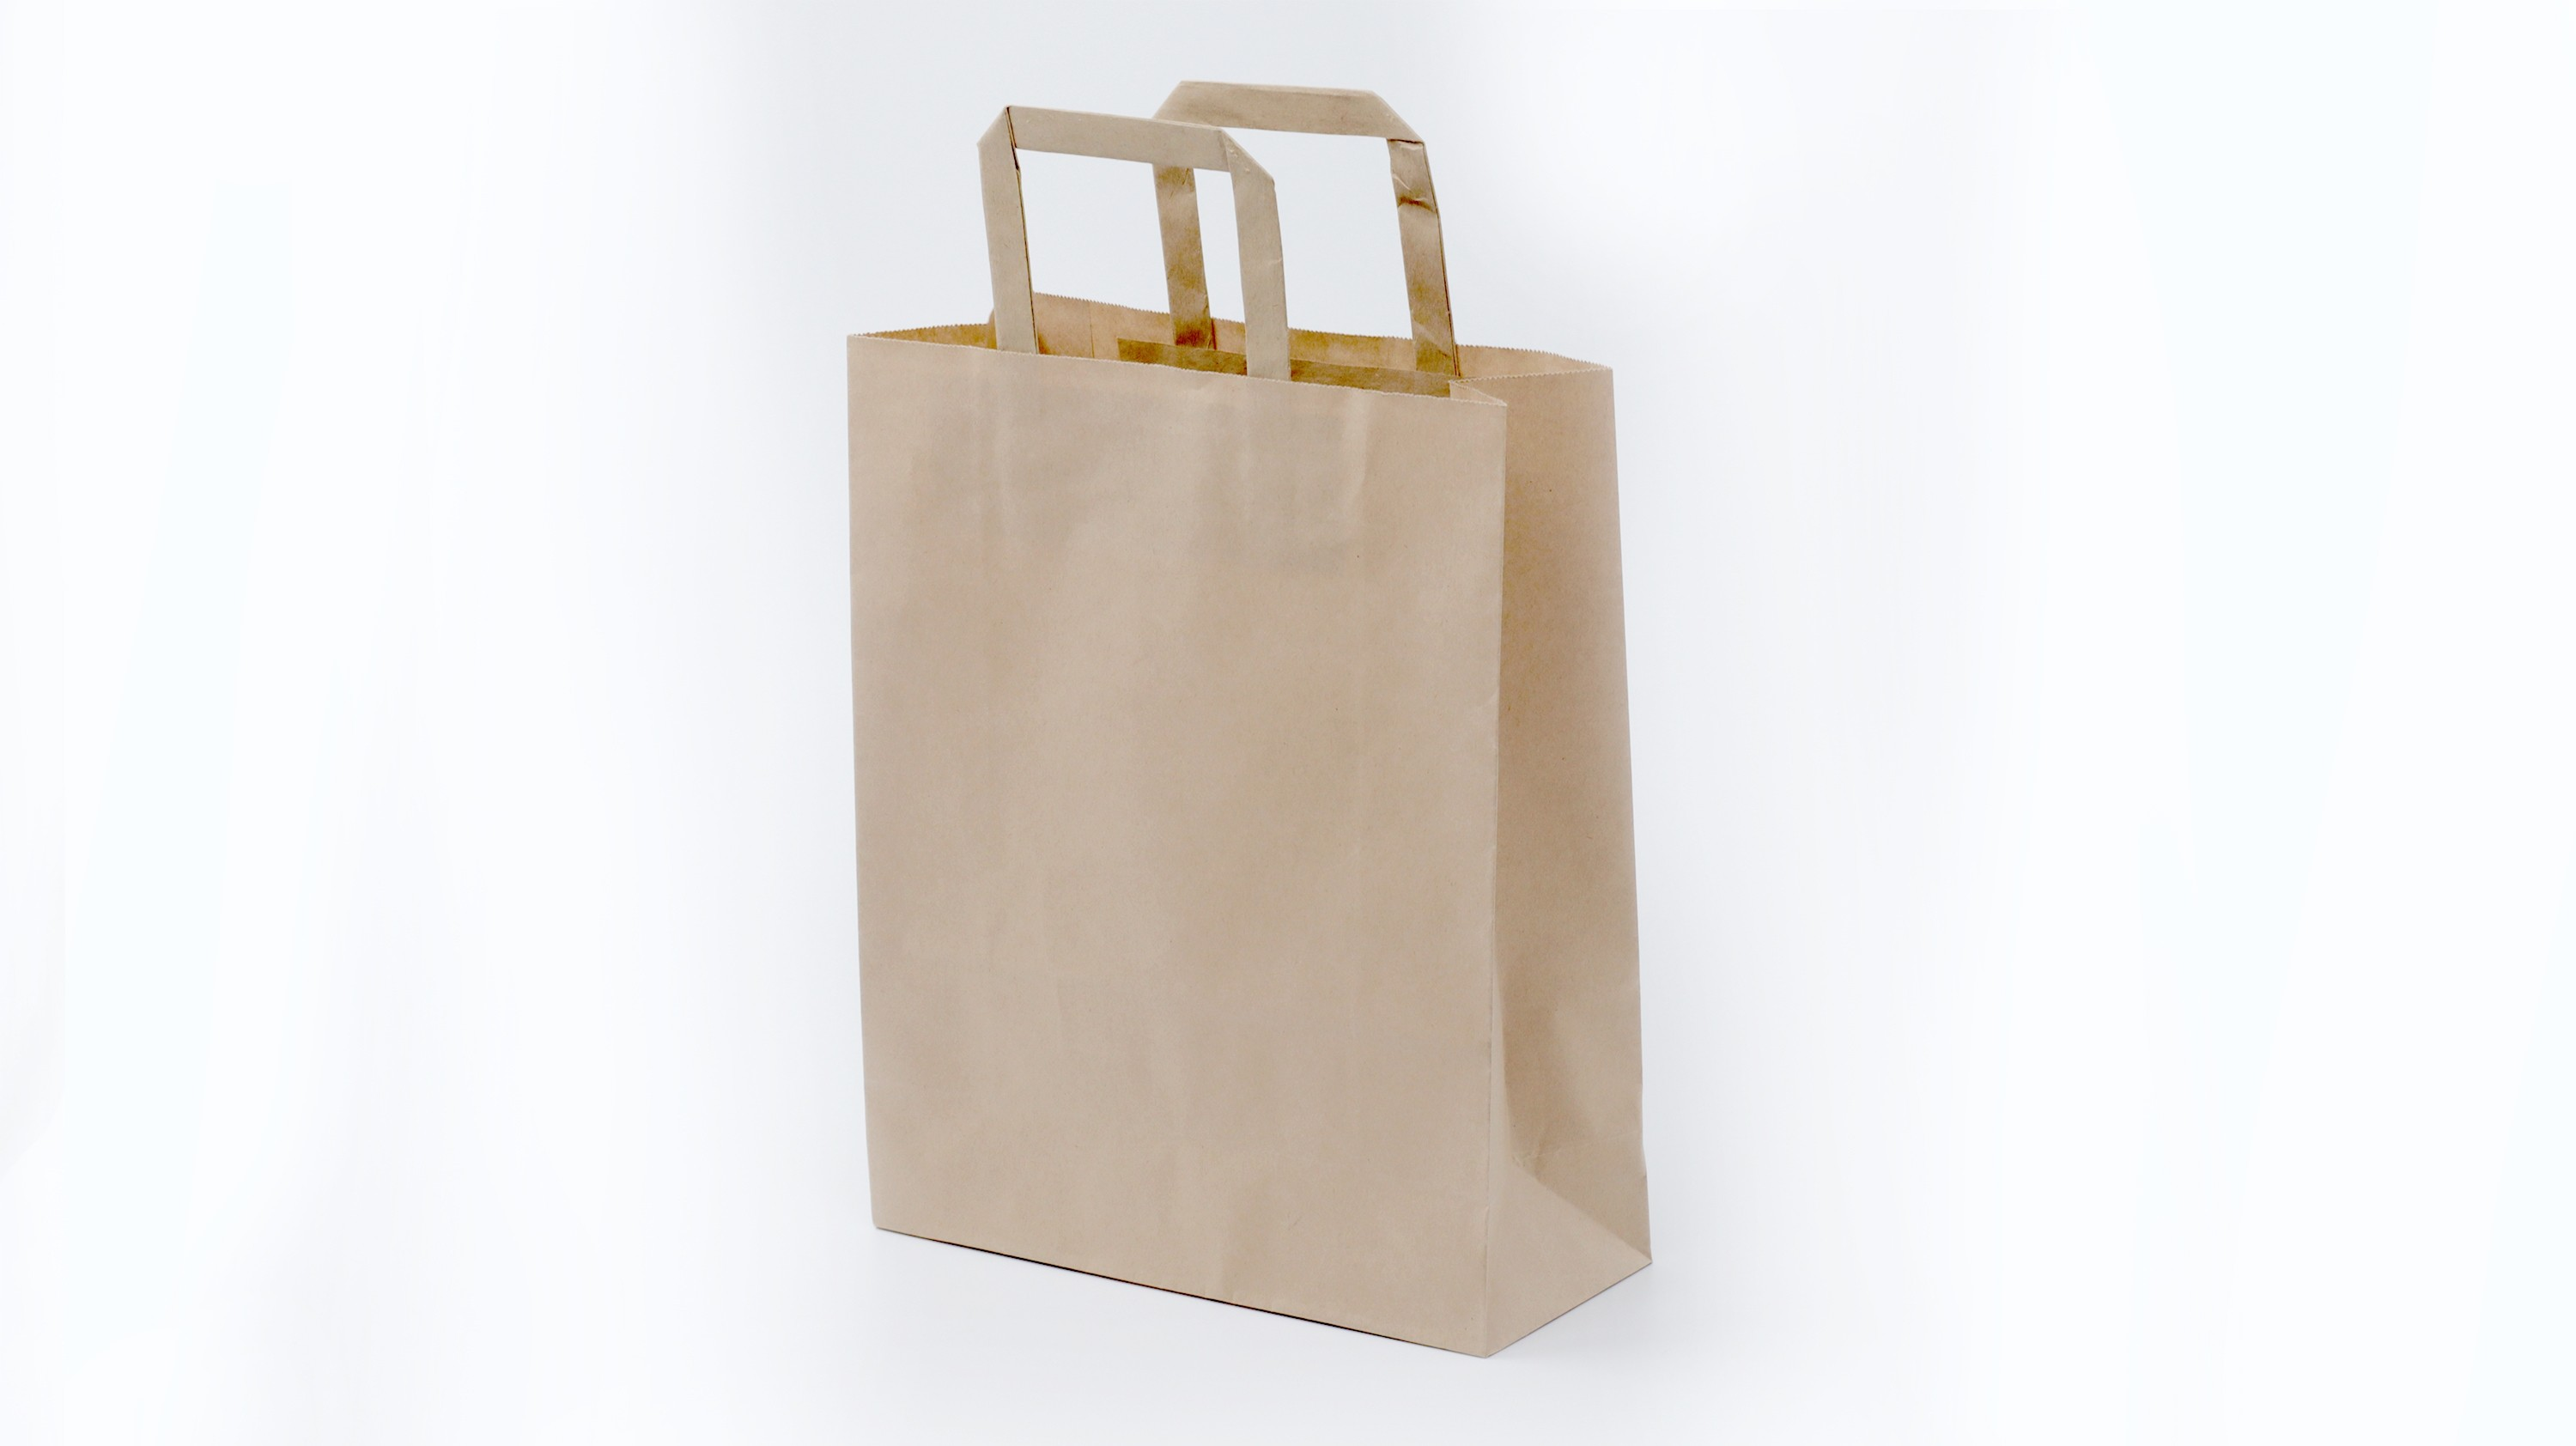 #60 FFH BROWN BAG (PAPER-PAK) WITH HANDLE